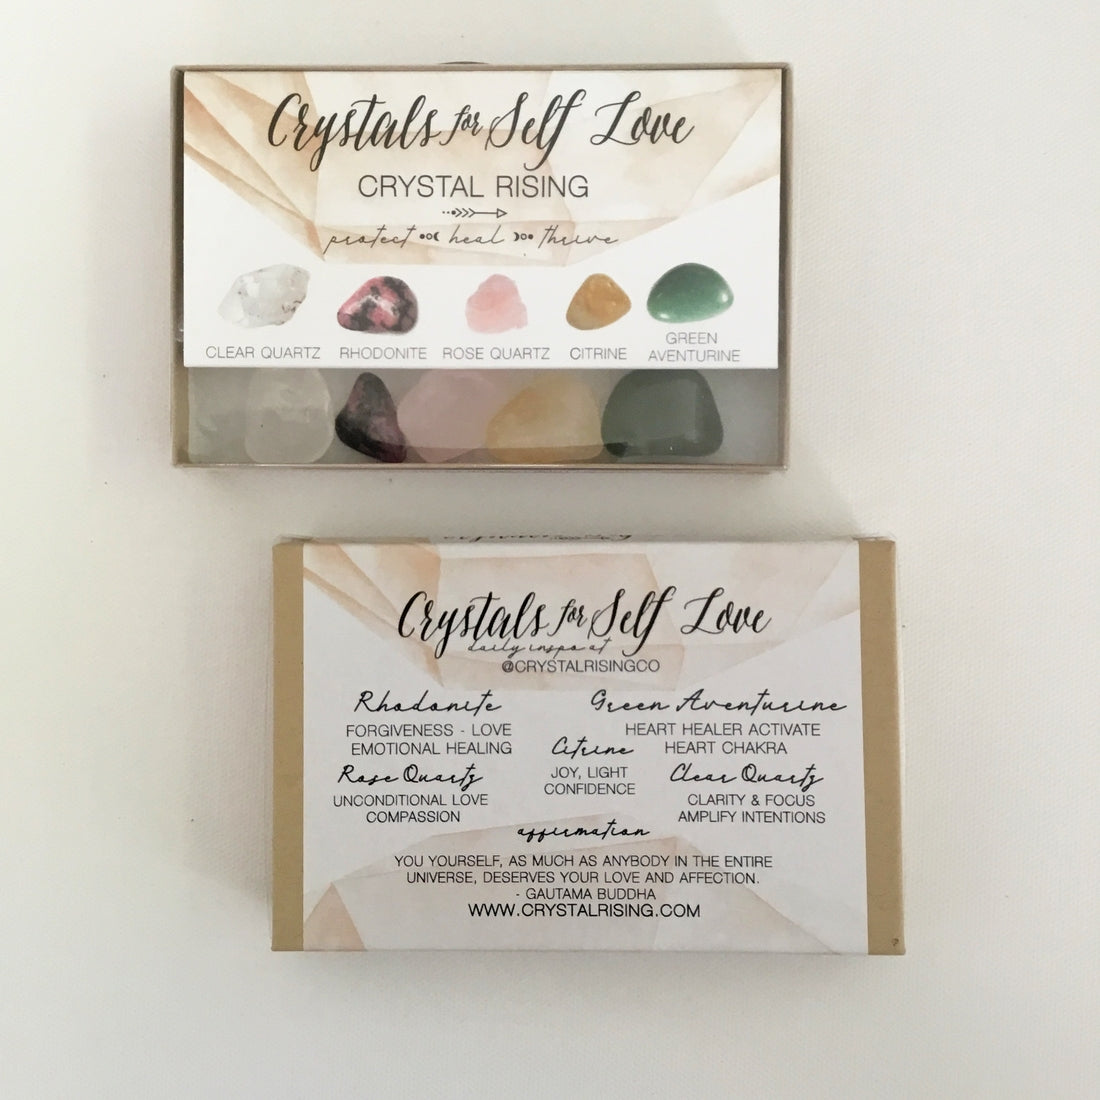 Crystal Rising - Crystals For Self Love Box Set - for sale at Modest Hemp Co.